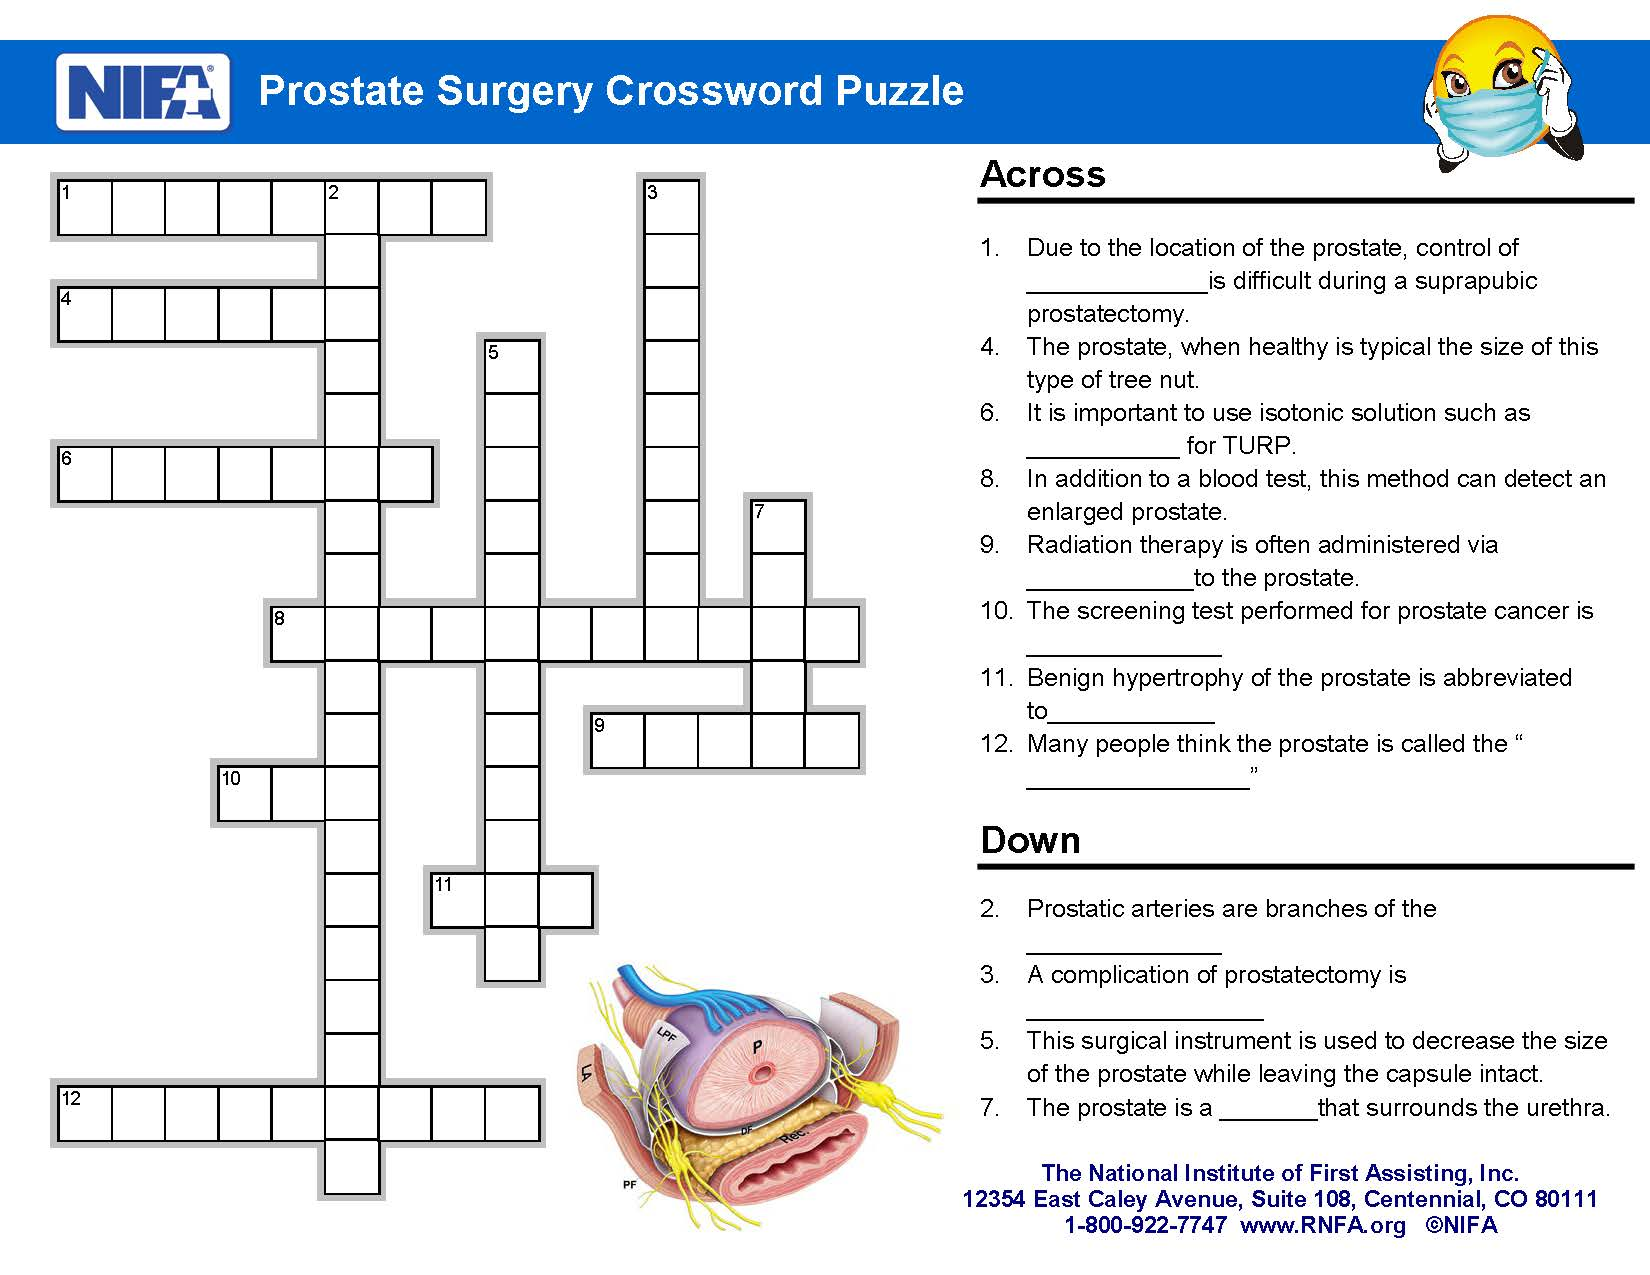 Prostate surgery crossword clues september 2017 rnfa ccuart Choice Image